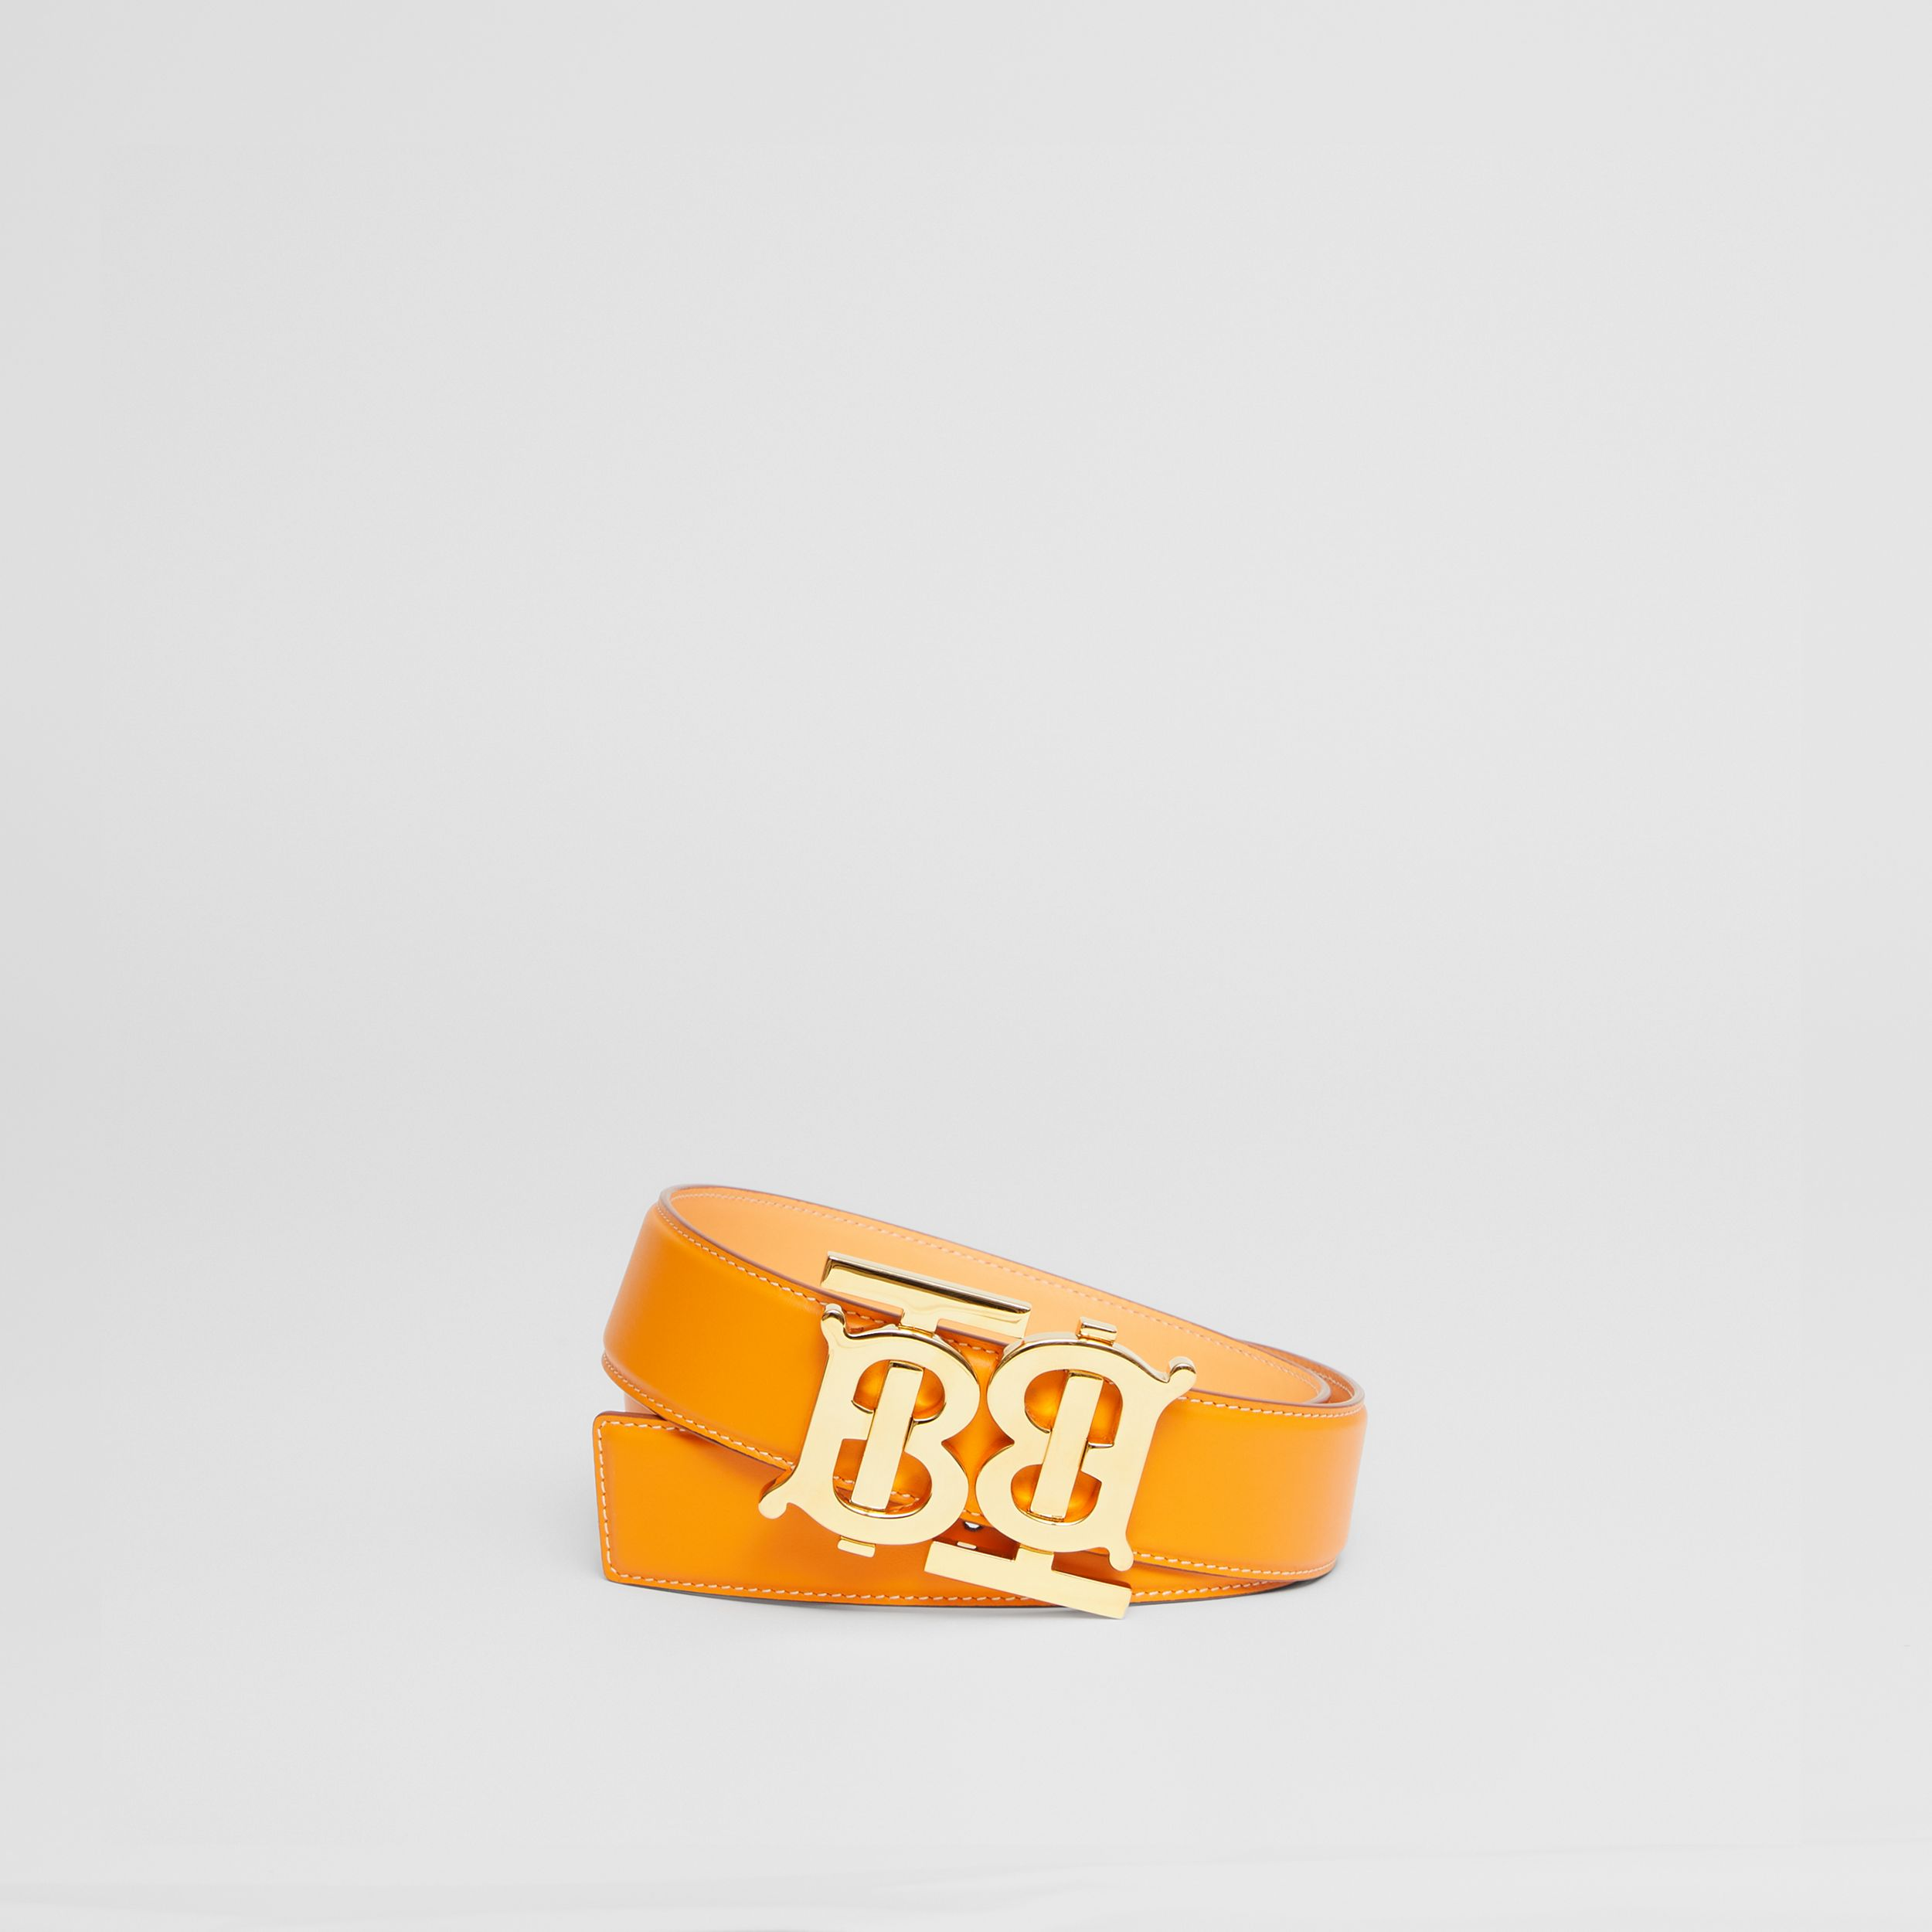 Double Monogram Motif Leather Belt in Deep Orange - Women | Burberry - 1